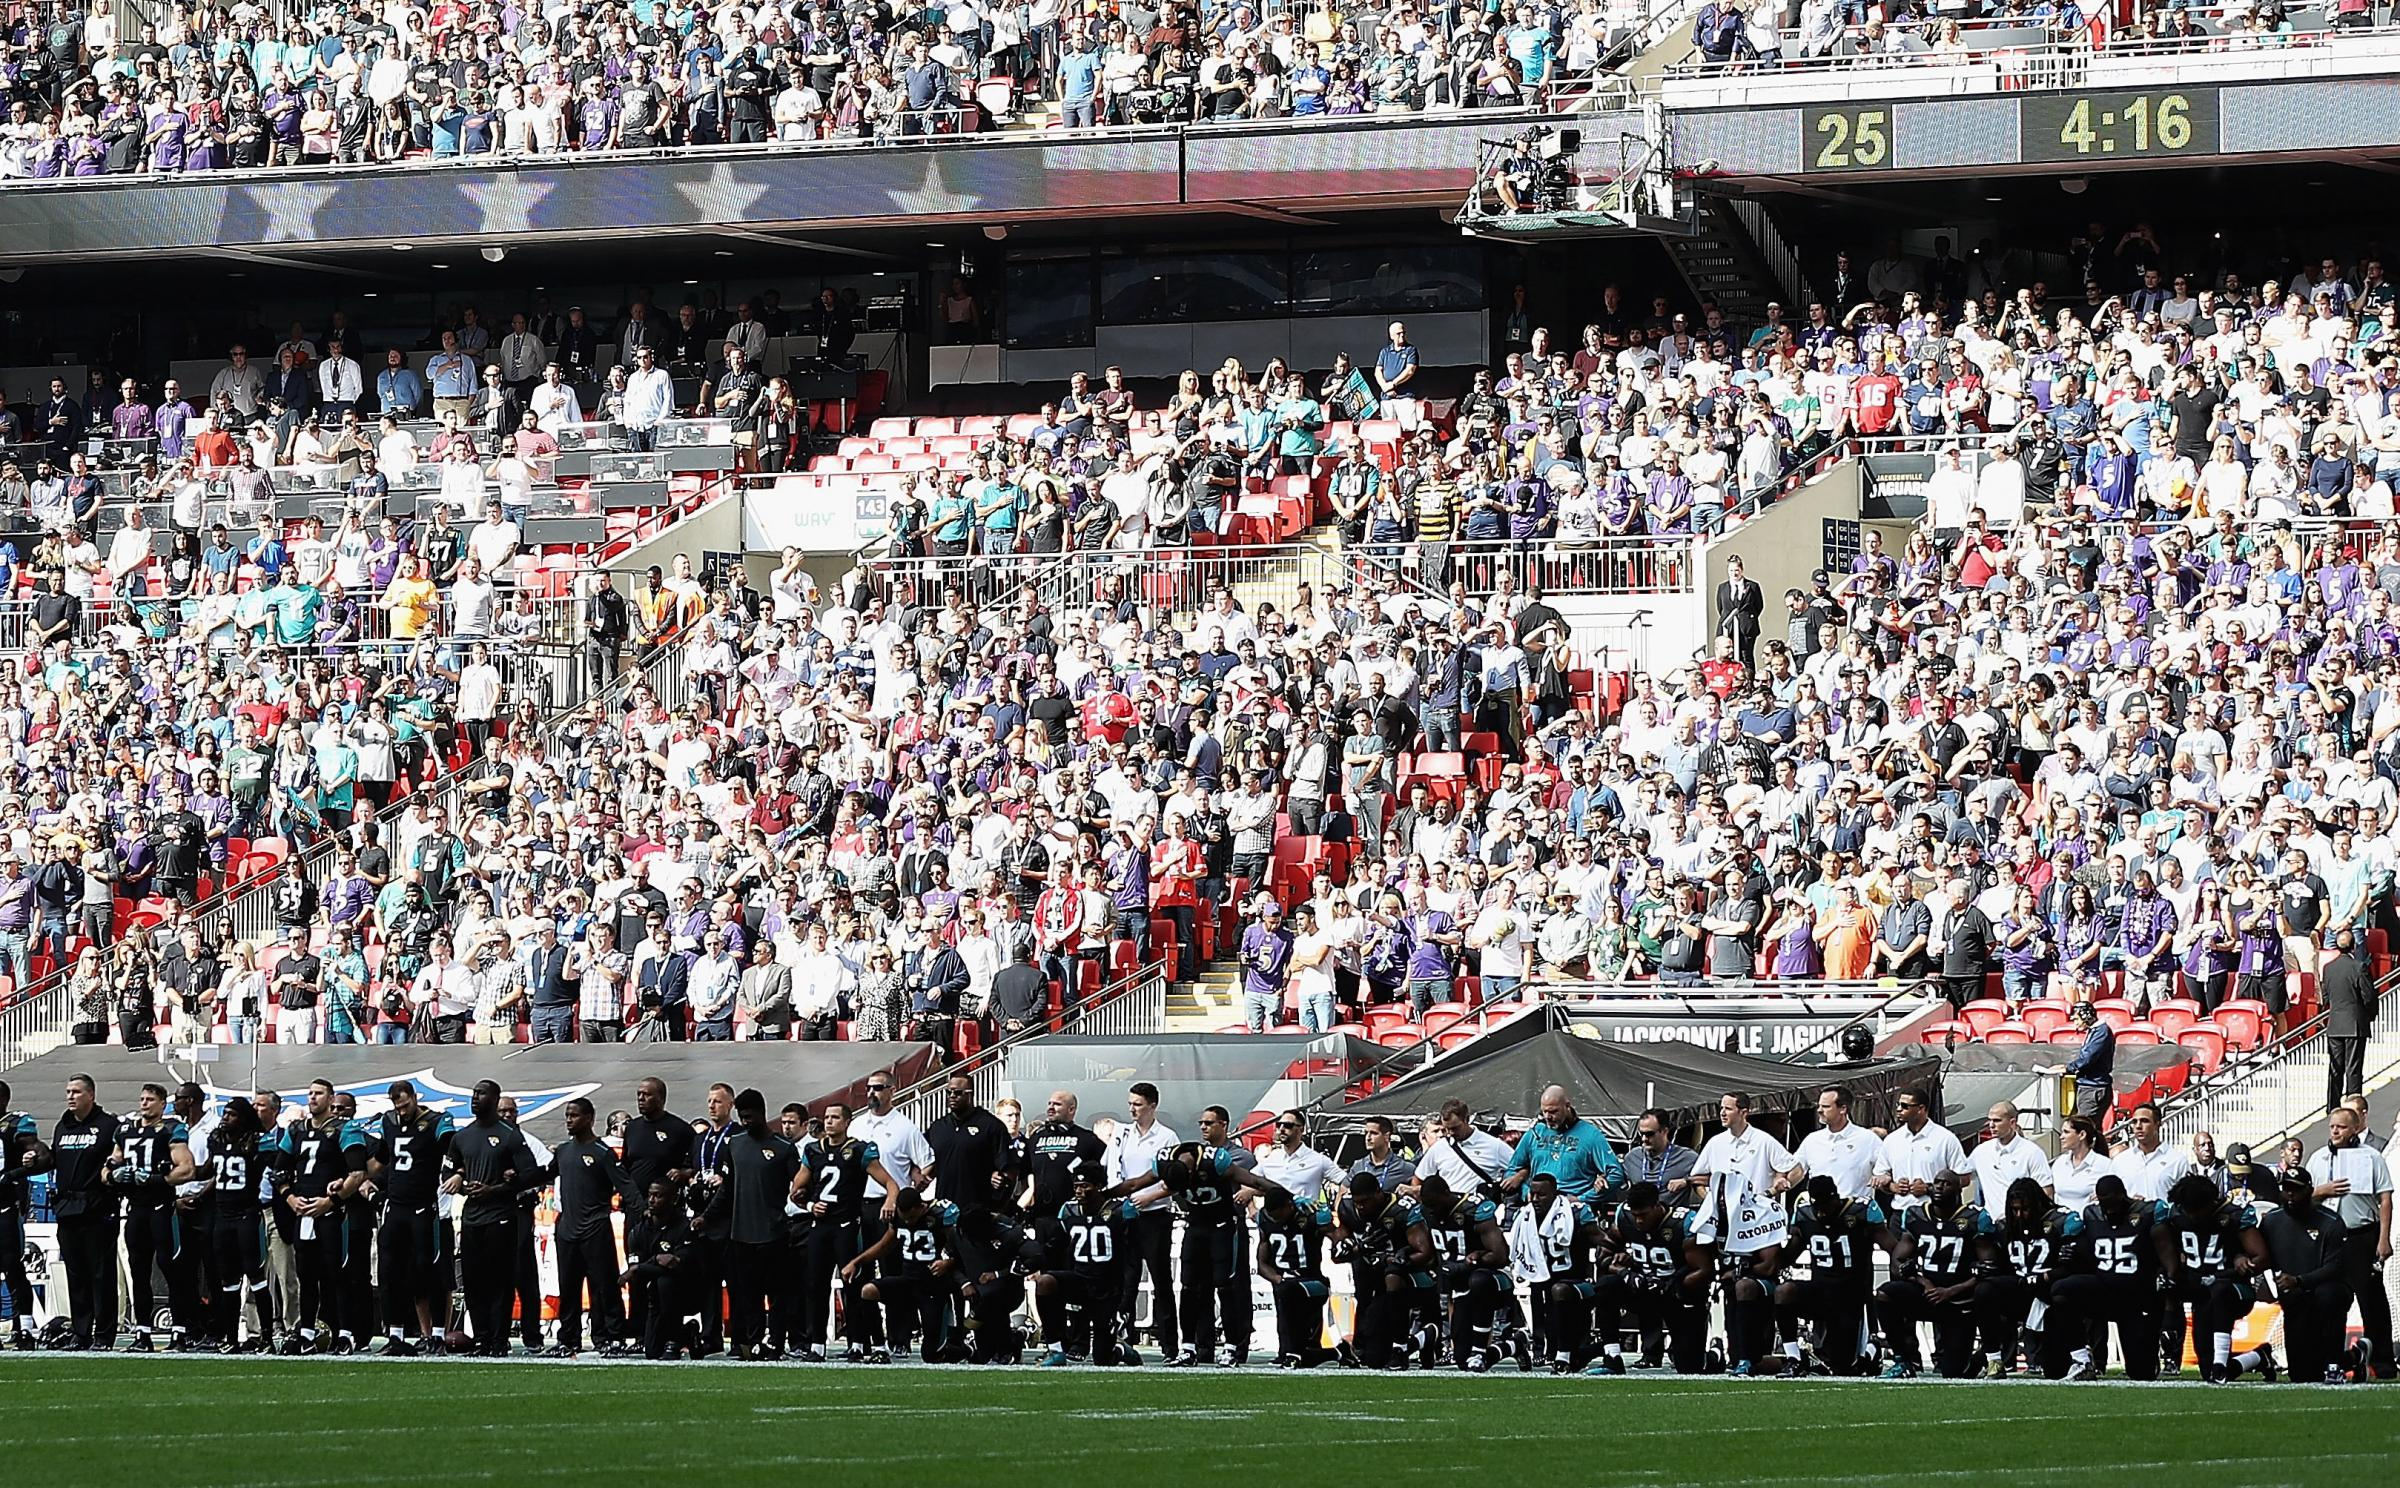 Jacksonville Jaguar players protest during the national anthem at Wembley during the NFL International Series match against Baltimore Ravens Photograph: Matthew Lewis/Getty